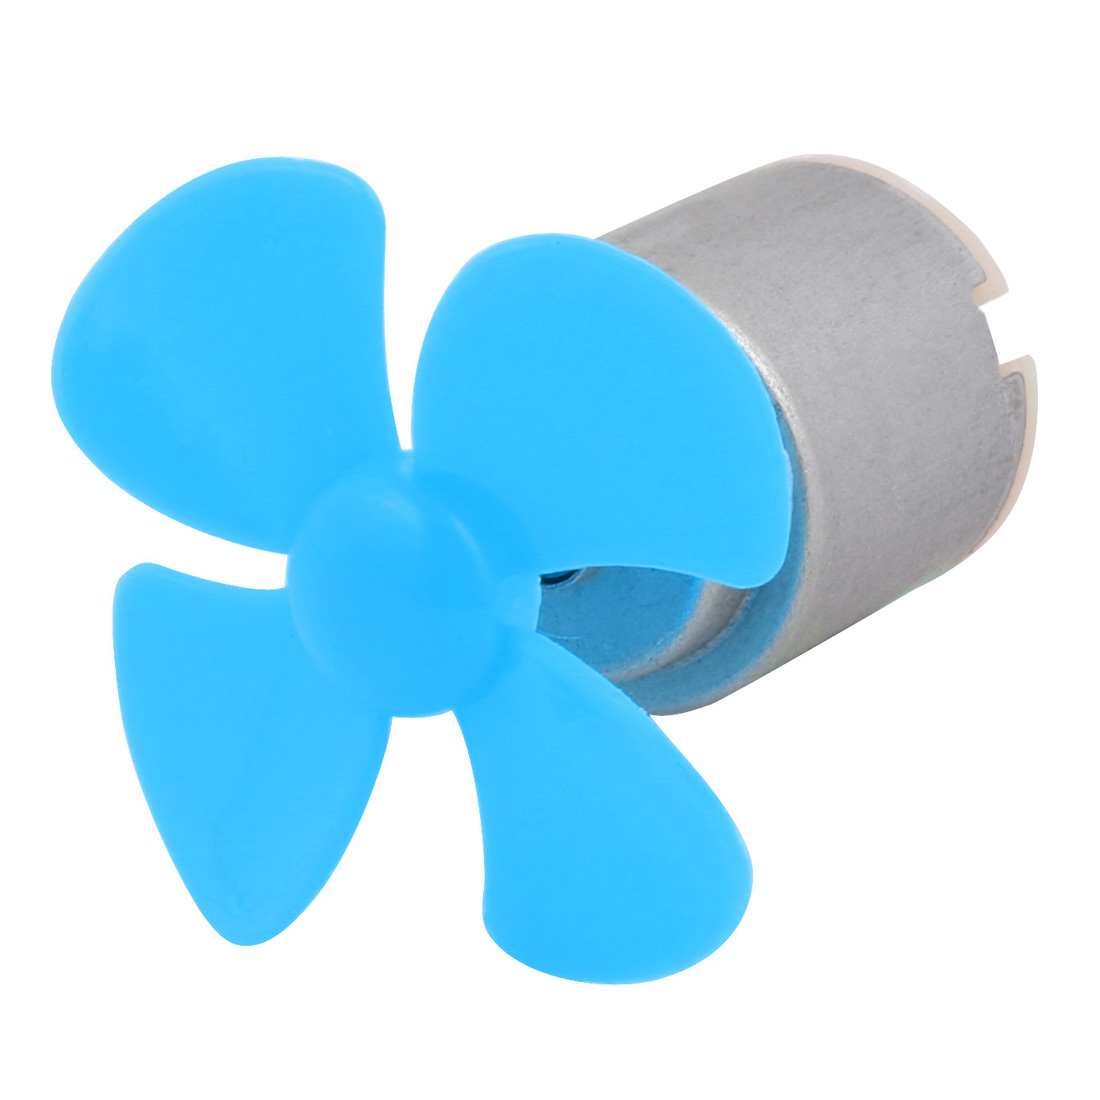 DC 3V 0.13A 17200RPM Large Torque Motor 4-Vane 40mm Dia Propeller Blue for RC Model